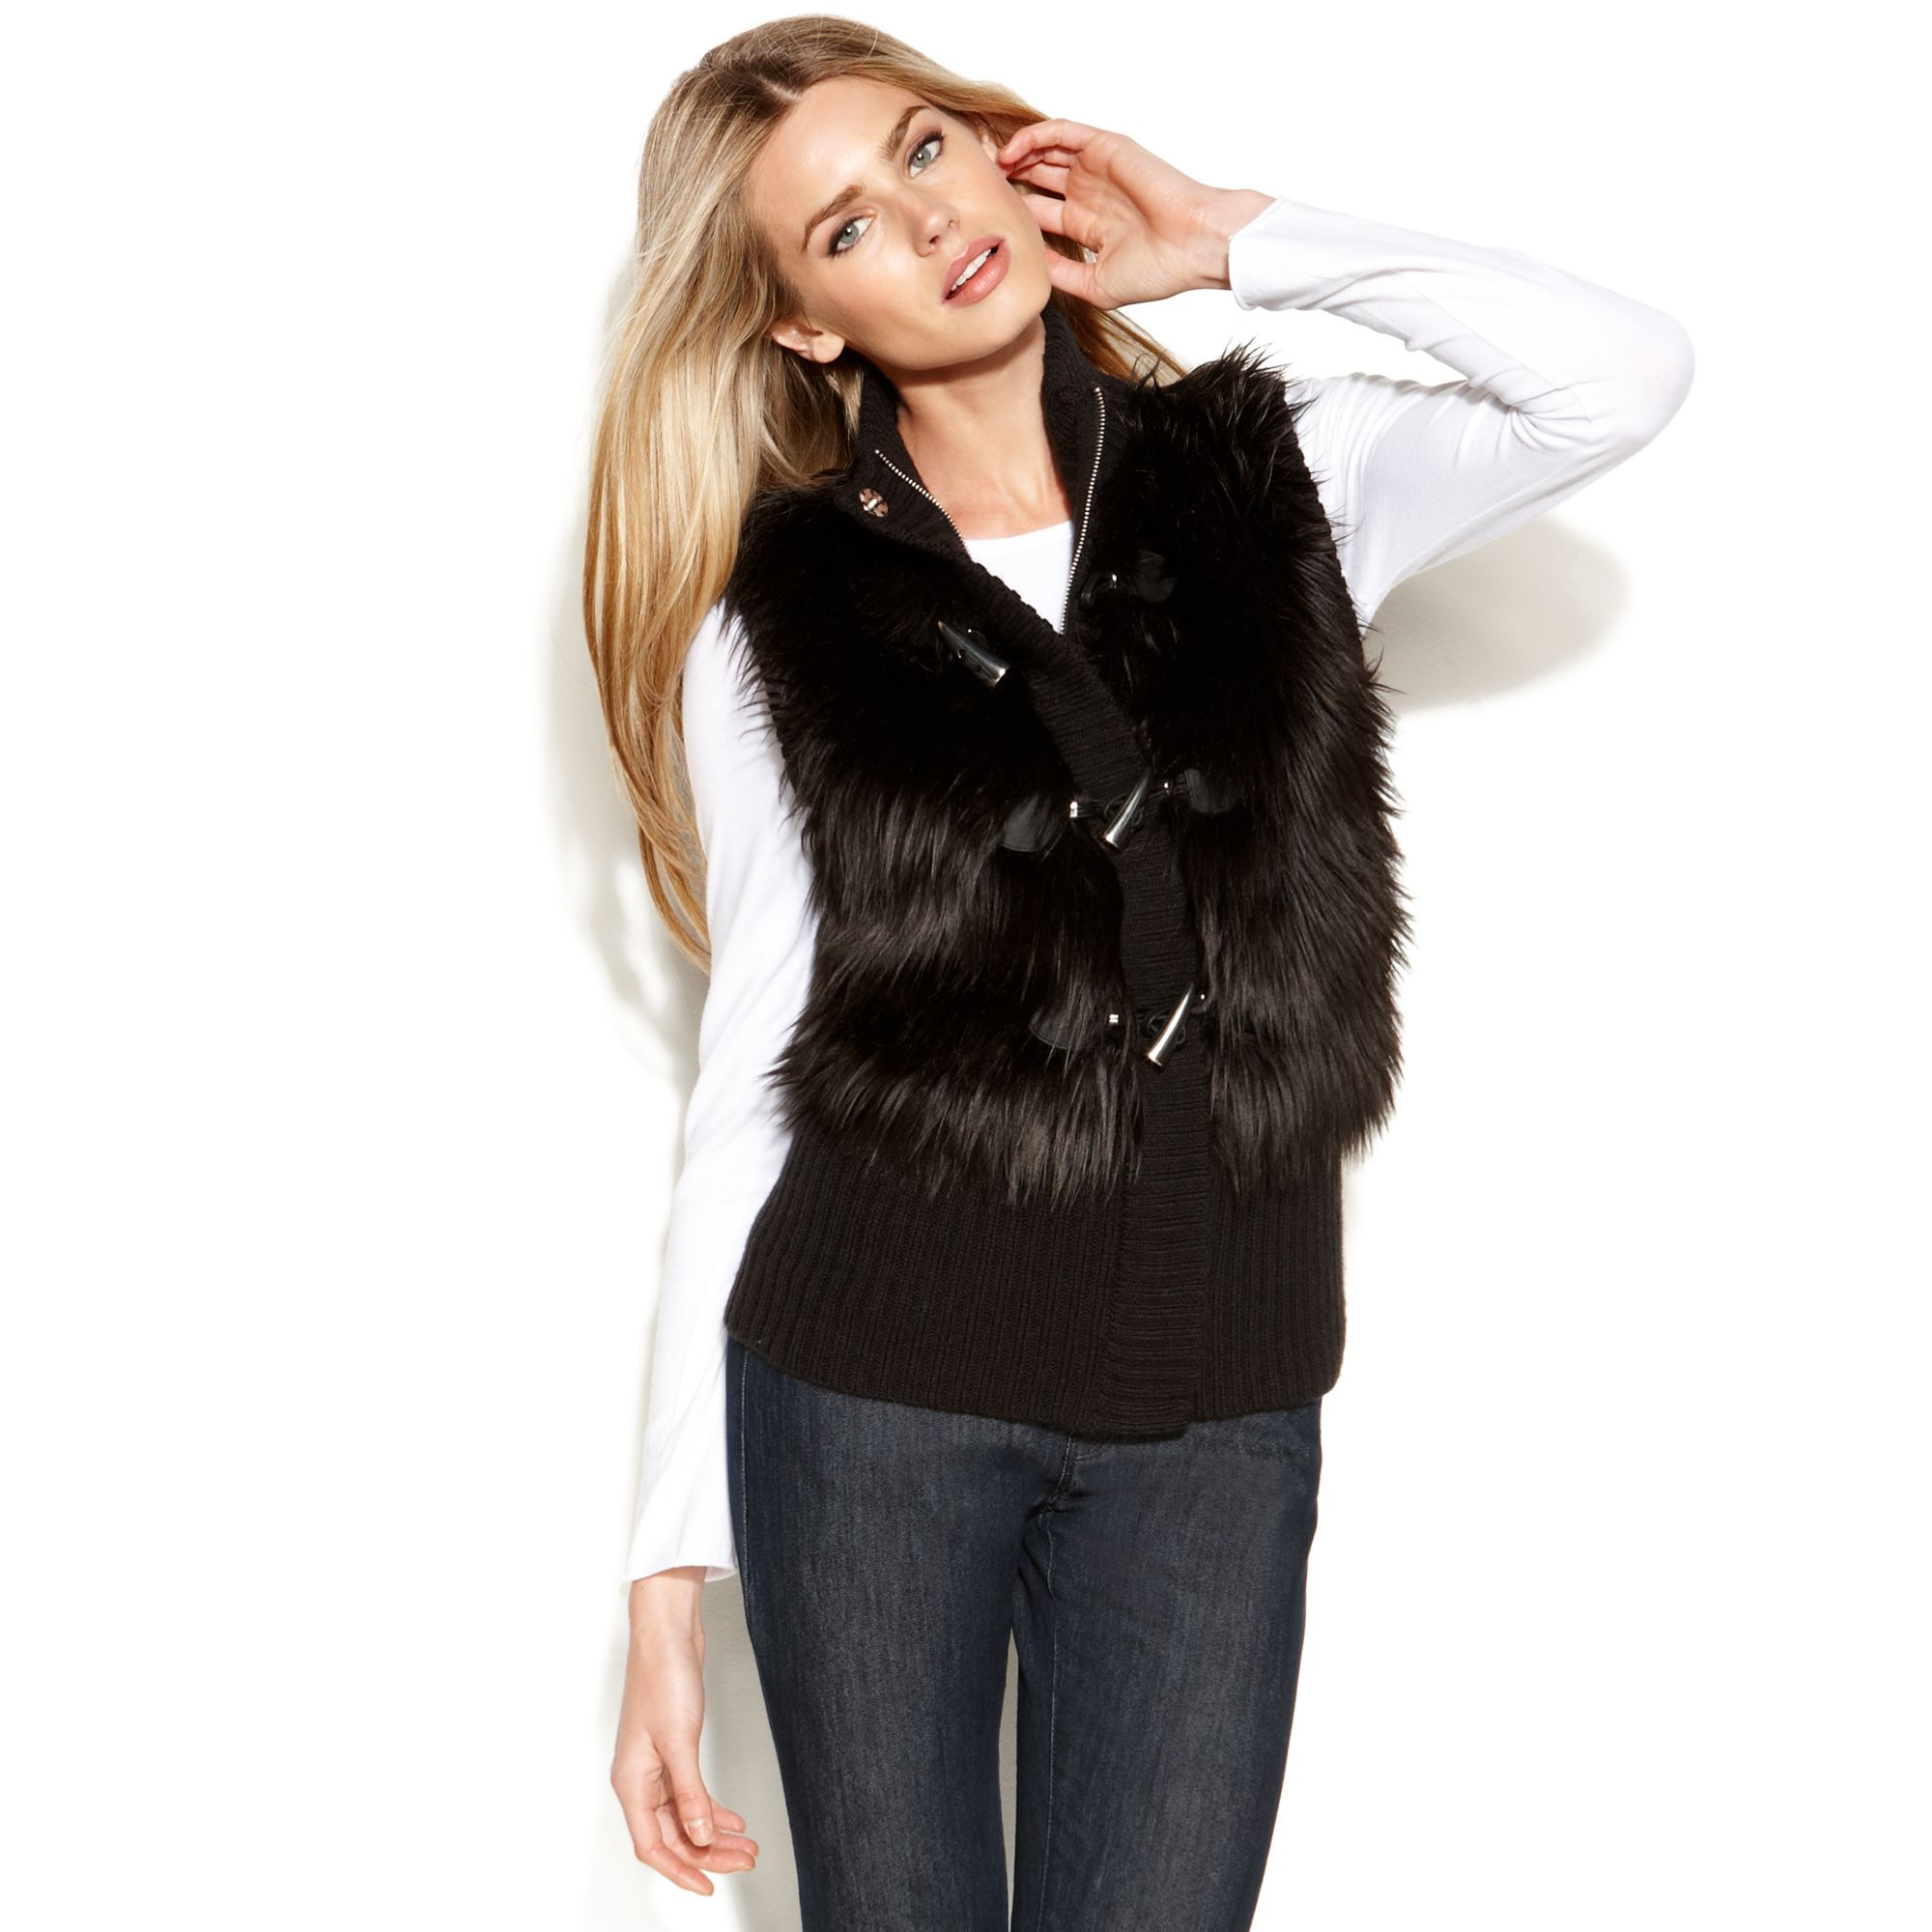 Shop bebe for: Jackets & Coats - Faux Fur Vest - Aspen-plans vest in a geo-texture faux fur. Silky, plush feel. Rib-knit back keeps the silhouette sleek and comfortable. Hidden front hook-and-eye closures.